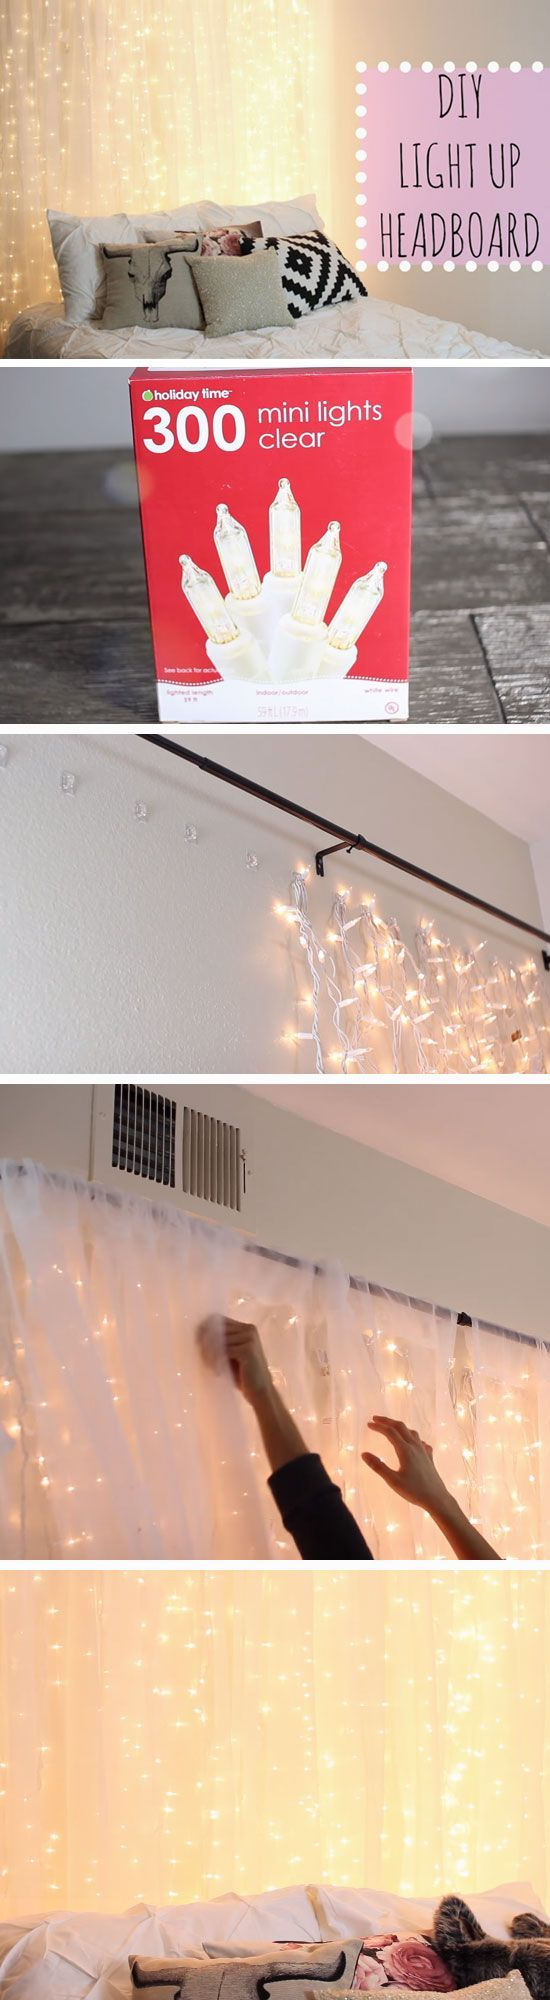 DIY Light Up Headboard.